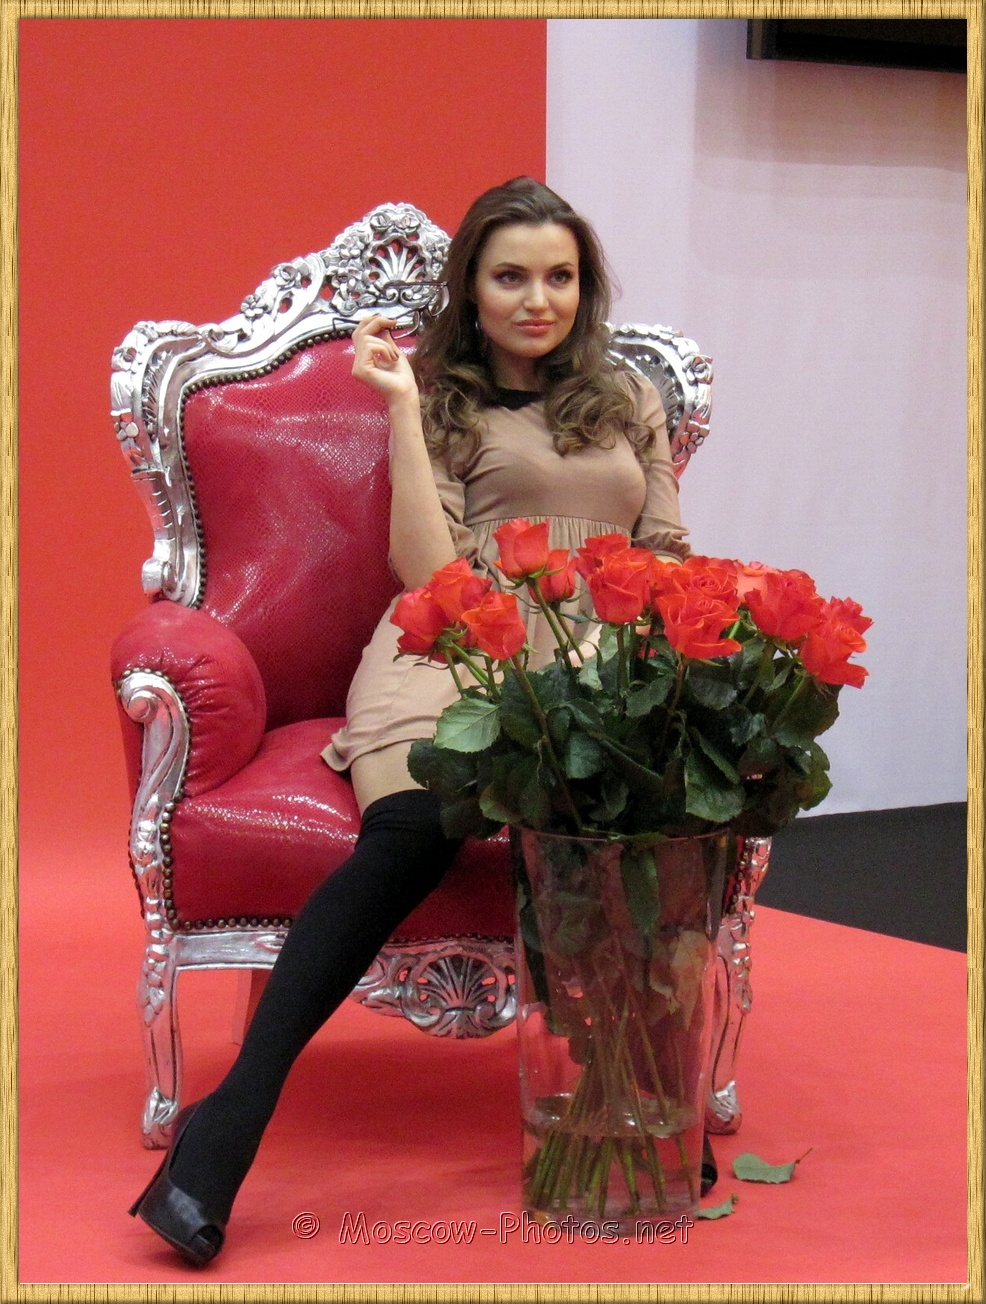 Model with Red Tulips at Photoforum 2011